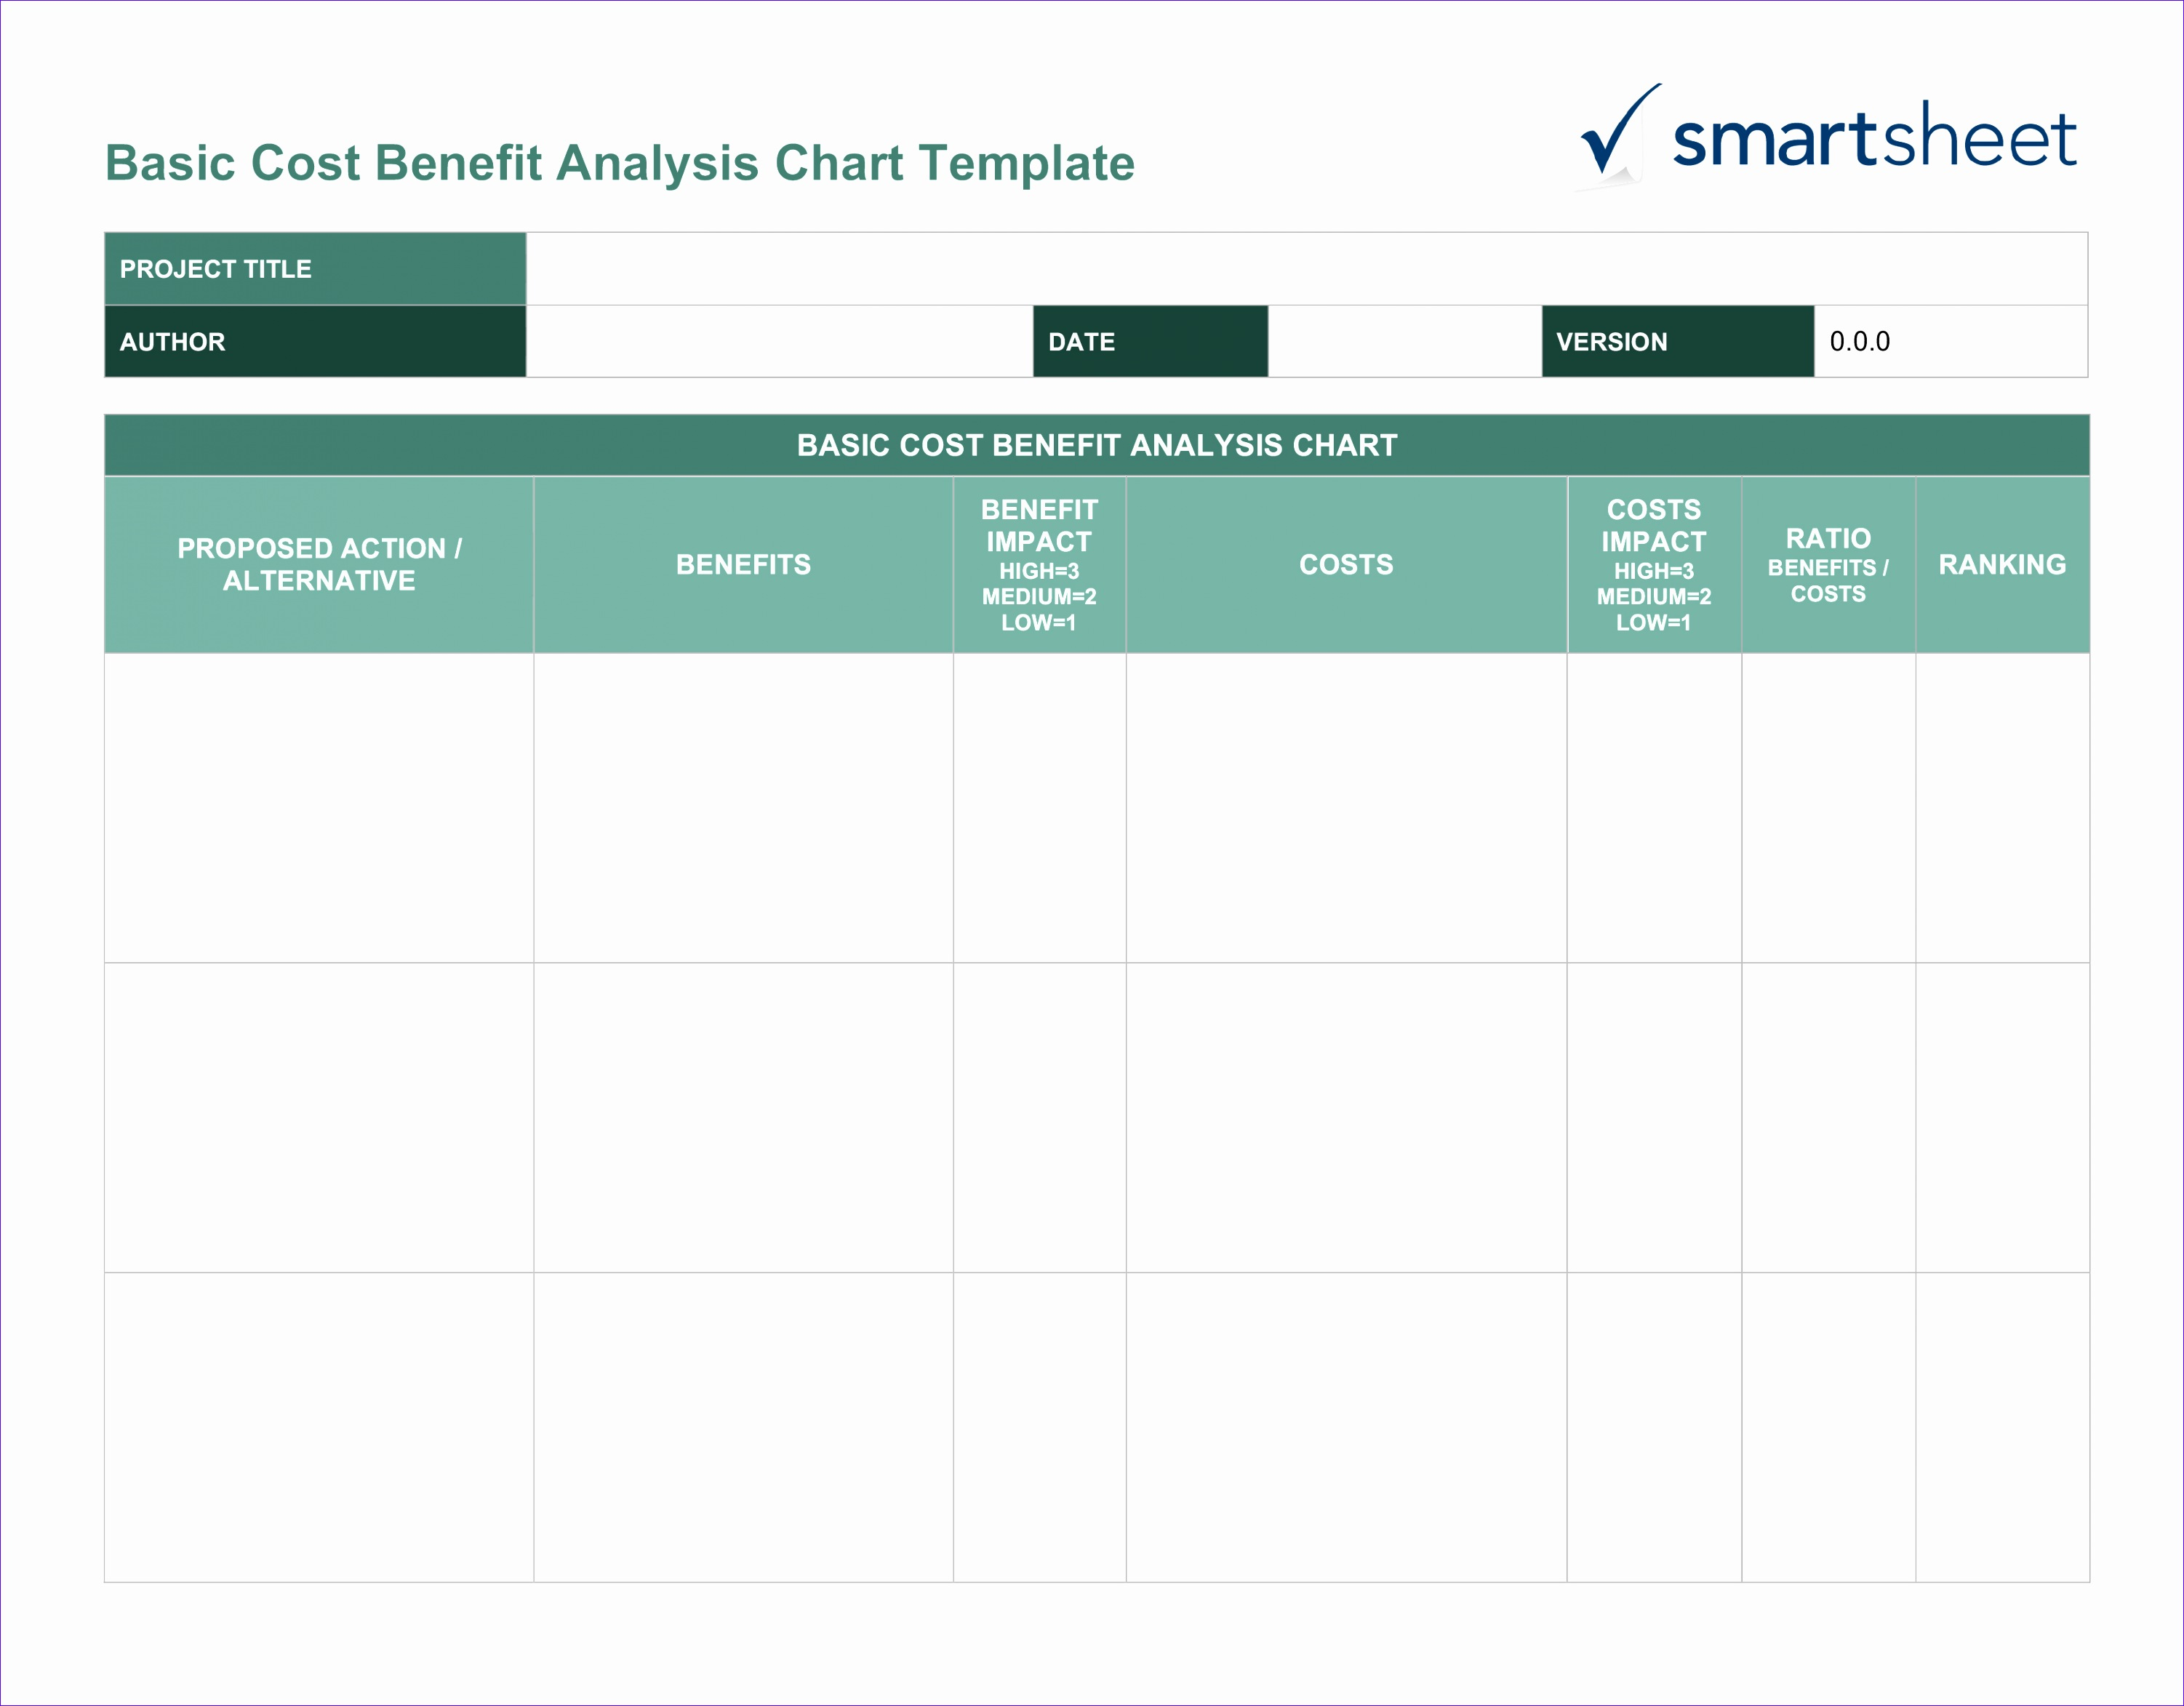 Net Present Value Calculator Excel Template Fcgyk New Free Cost Benefit Analysis Templates Smartsheet